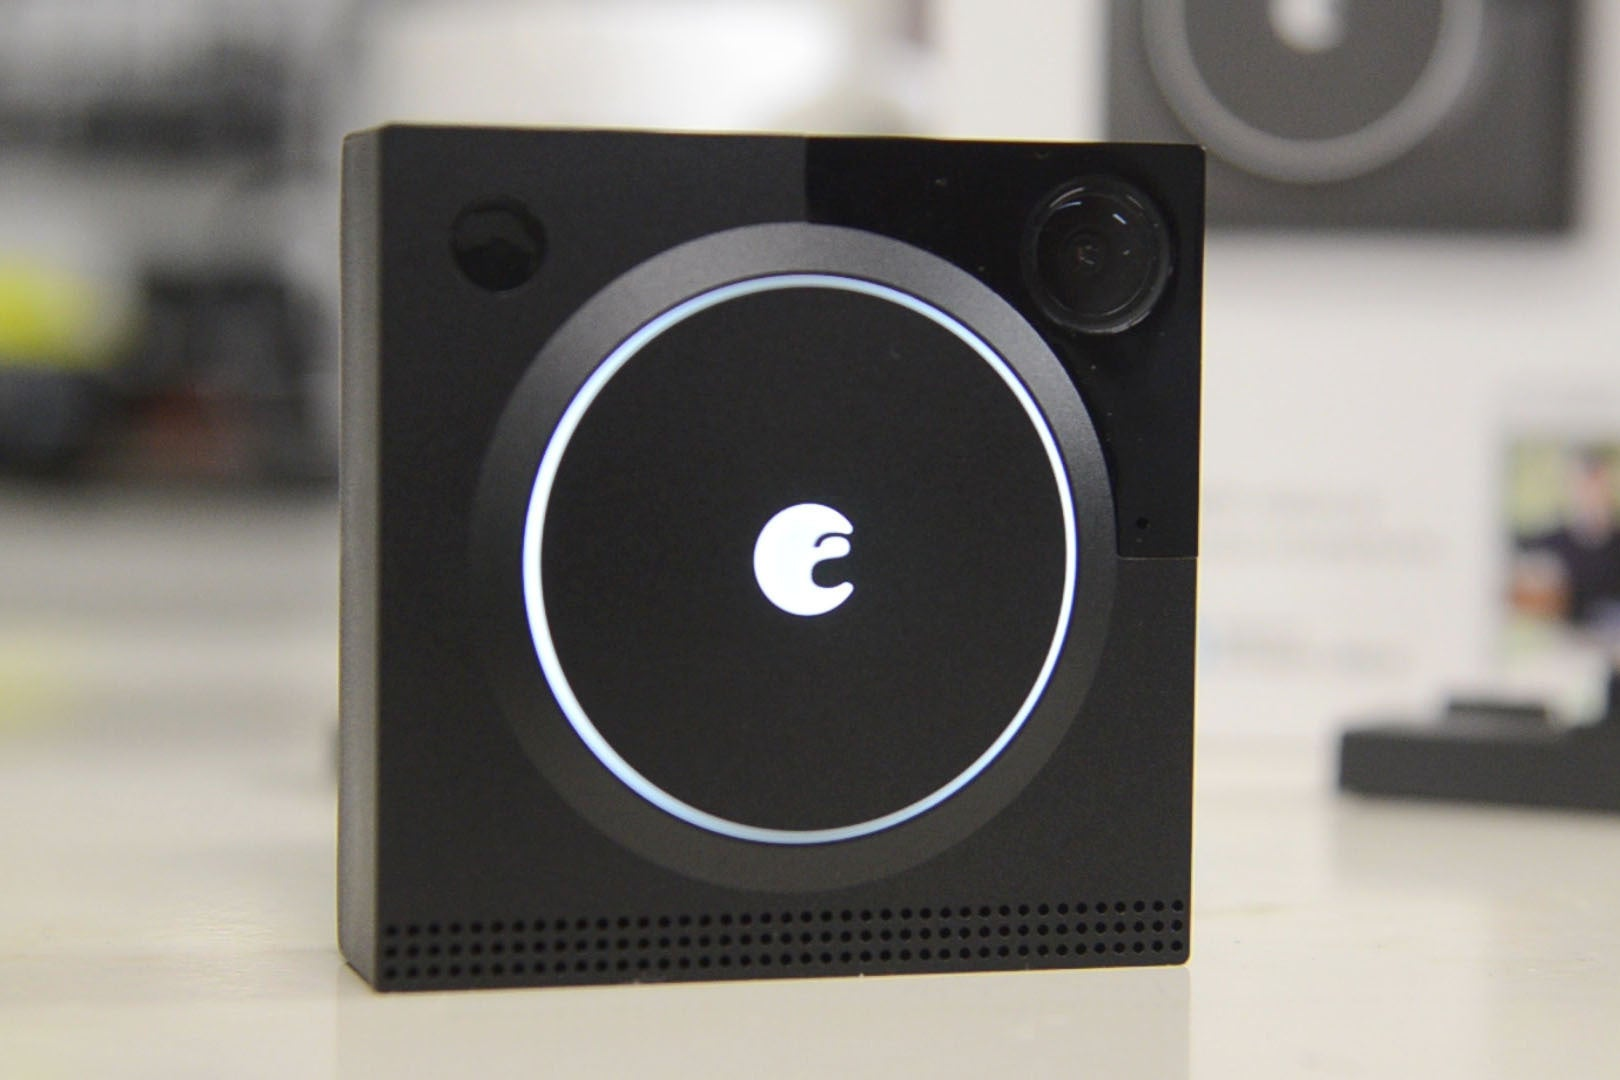 August Doorbell Cam Pro 2 review: This is a good-looking video ...